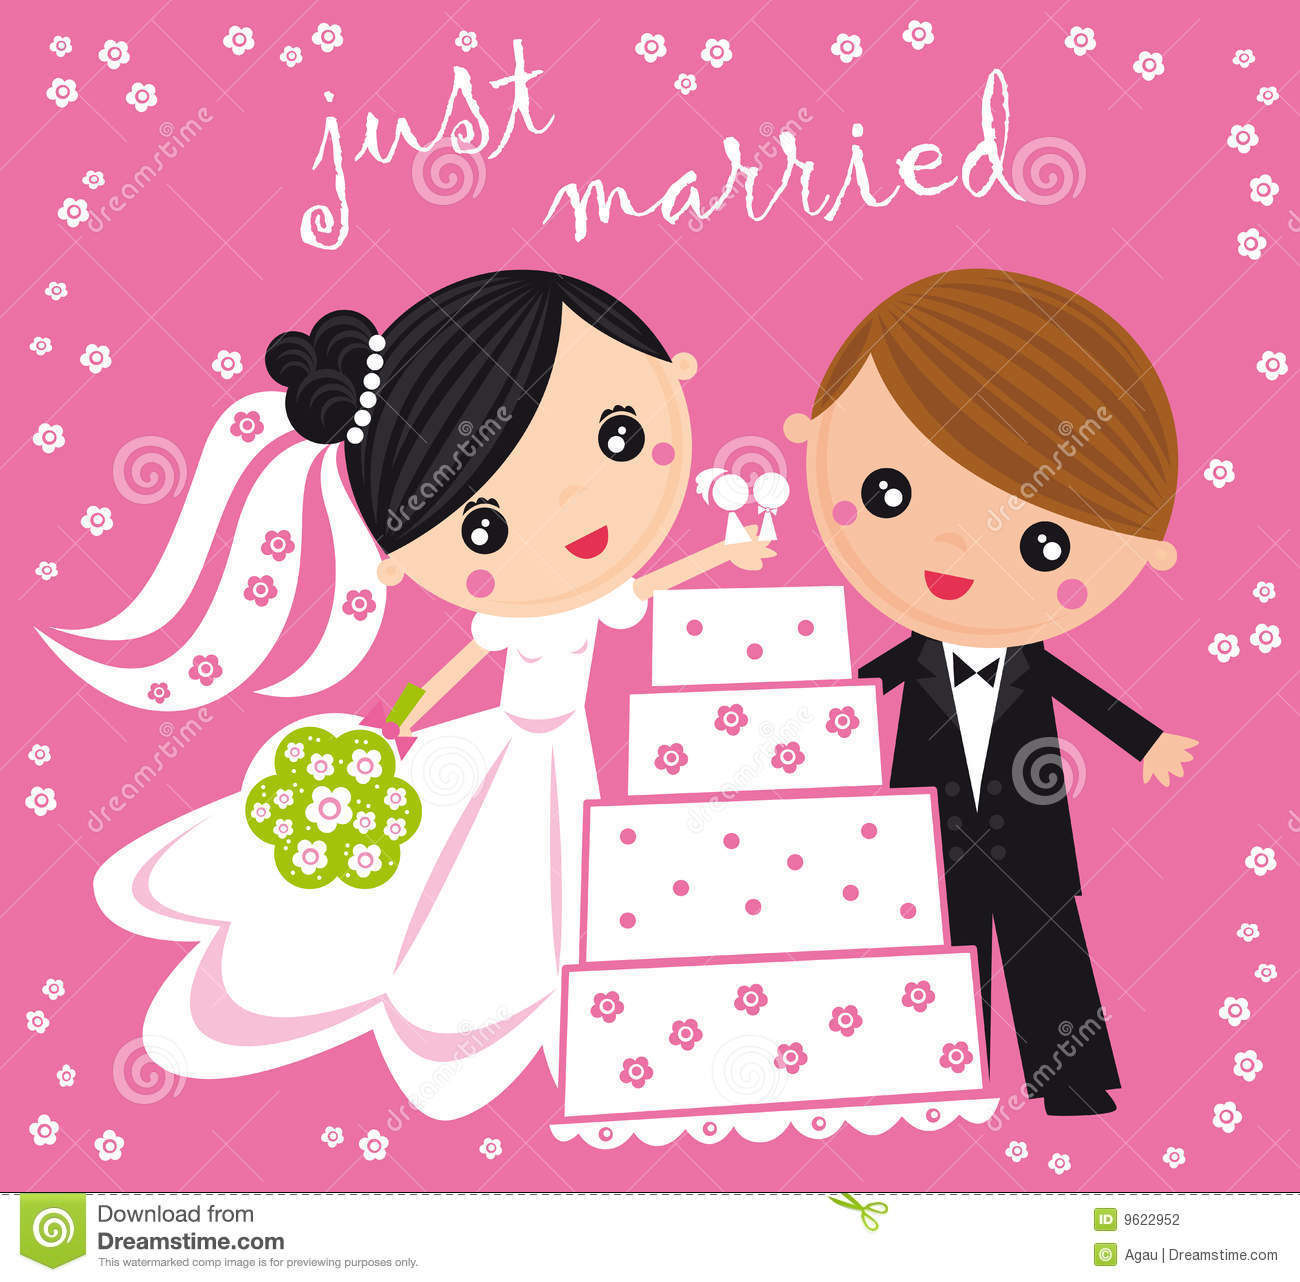 Image Result For Wedding Wishes Animation